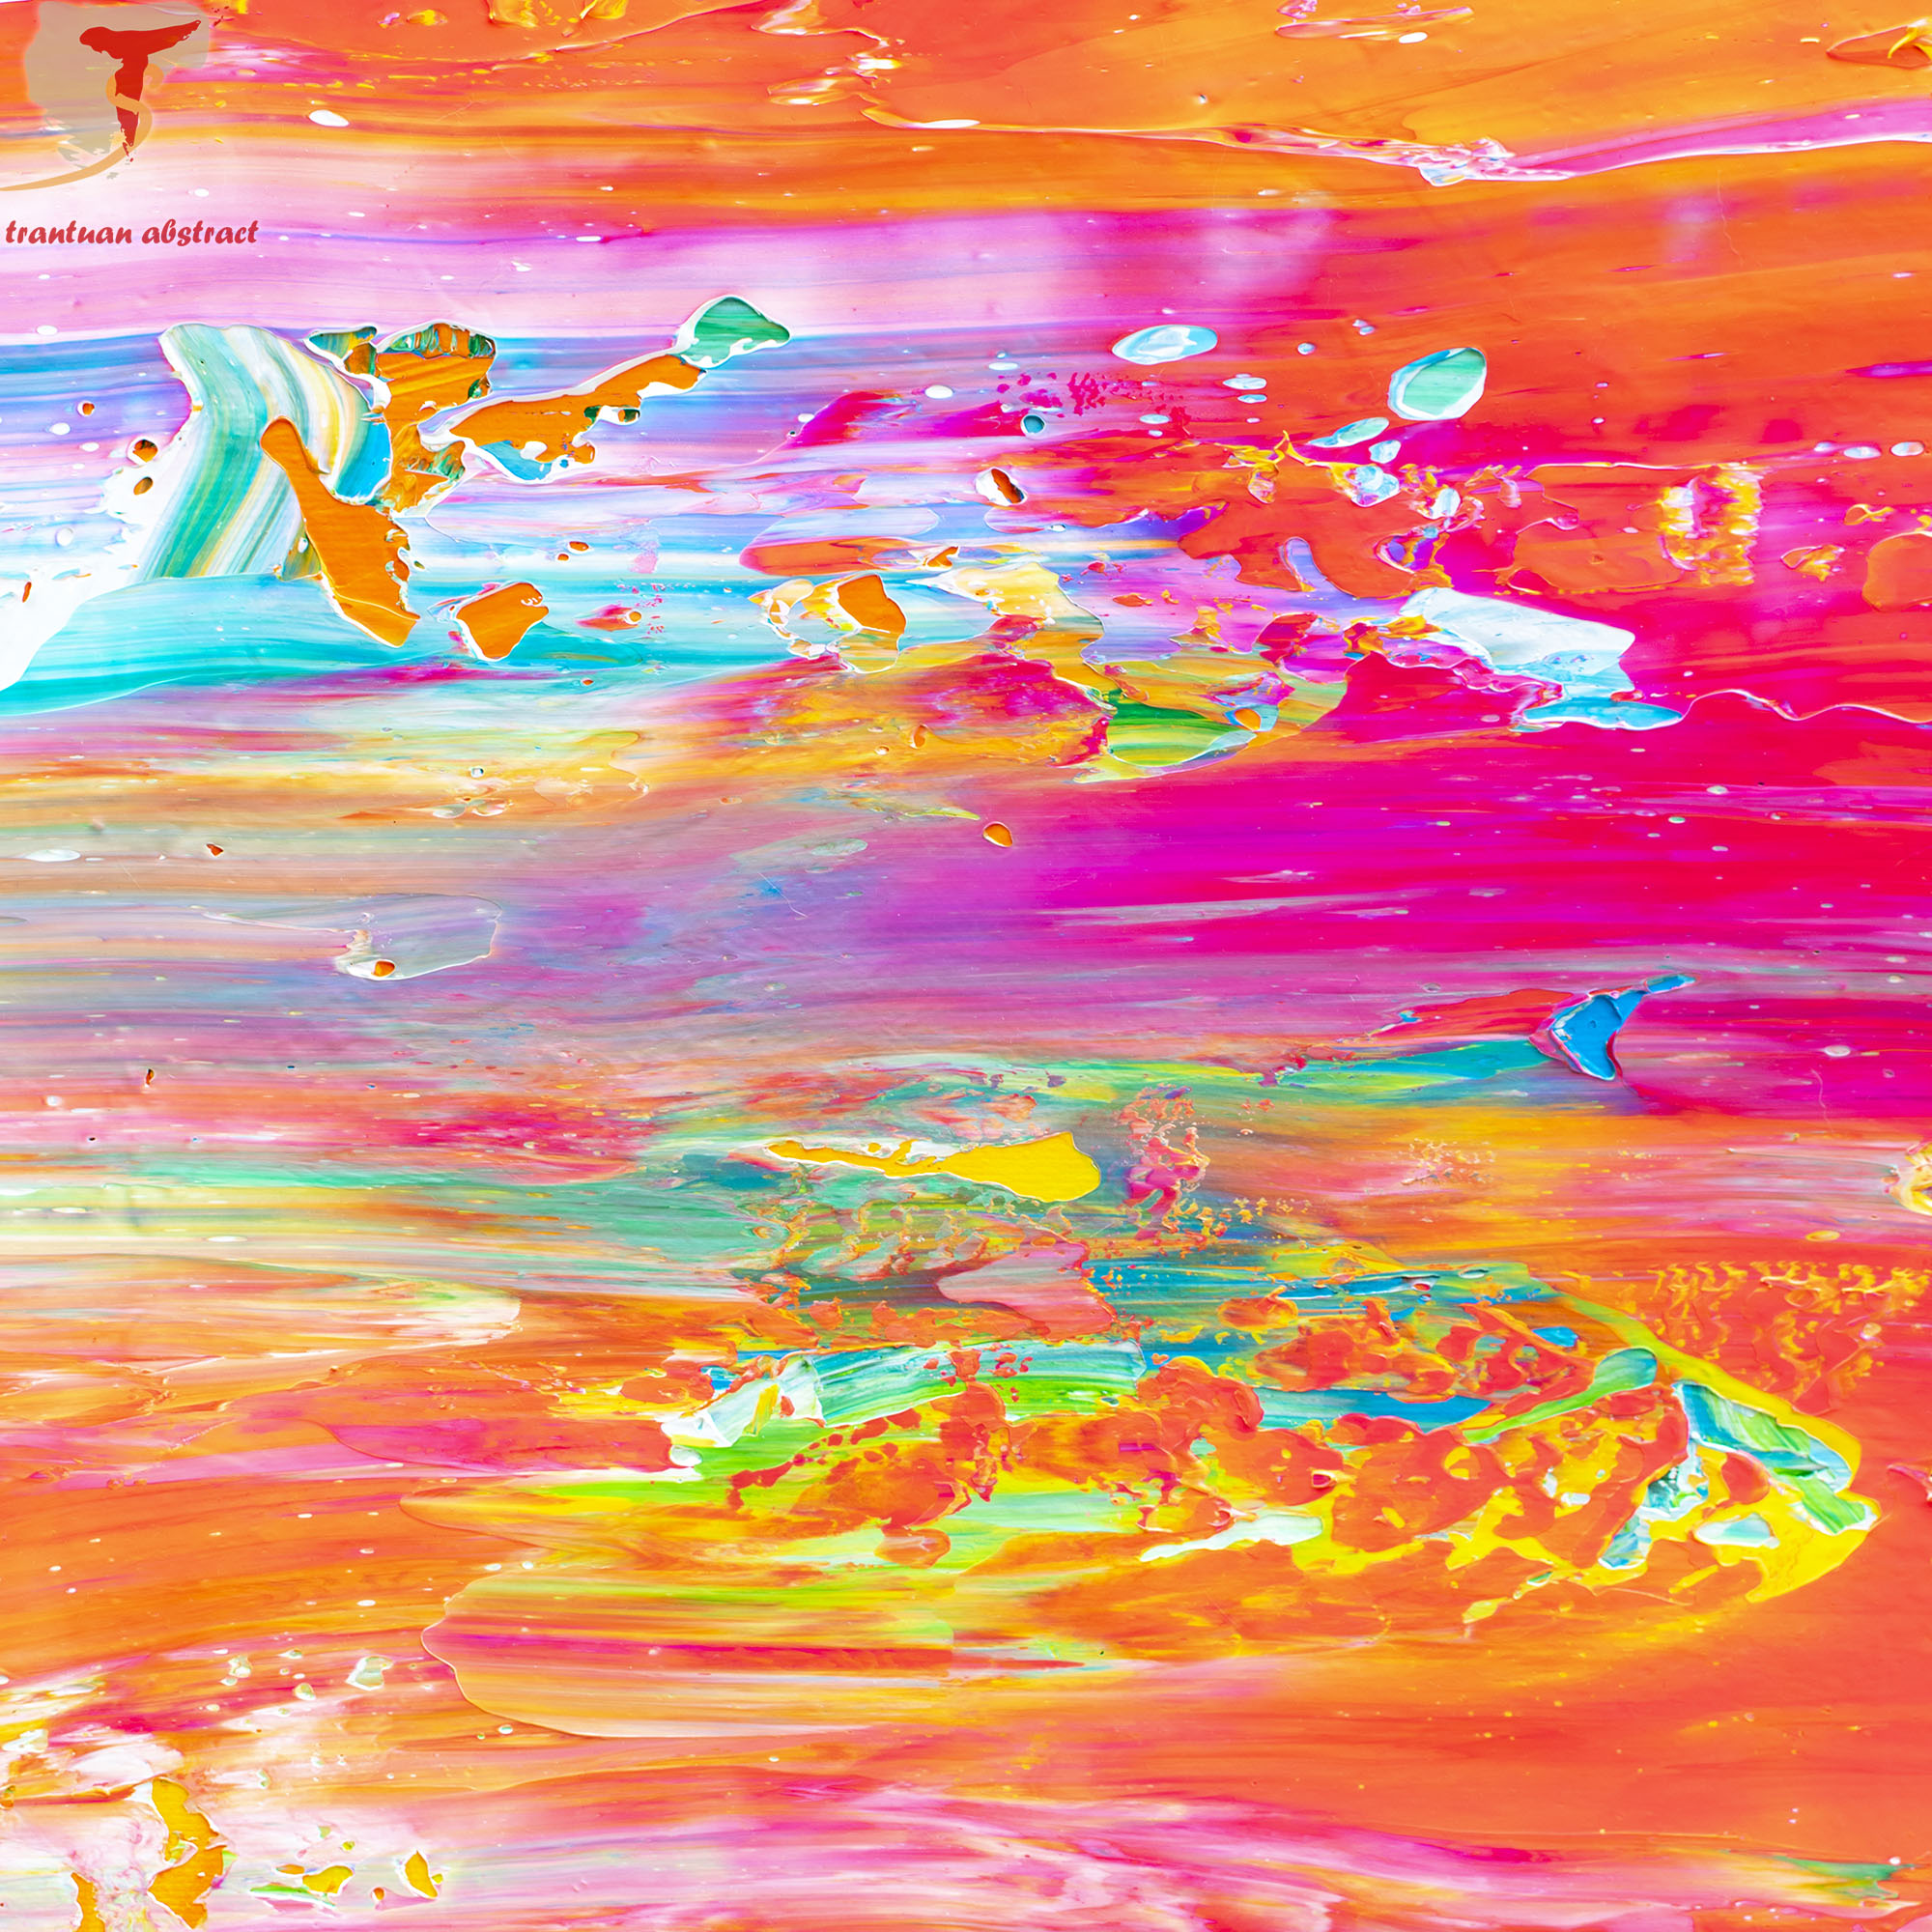 Tran Tuan Abstract Dawn on the Sea 135 x 80 x 5 cm Acrylic on Canvas Painting Detail